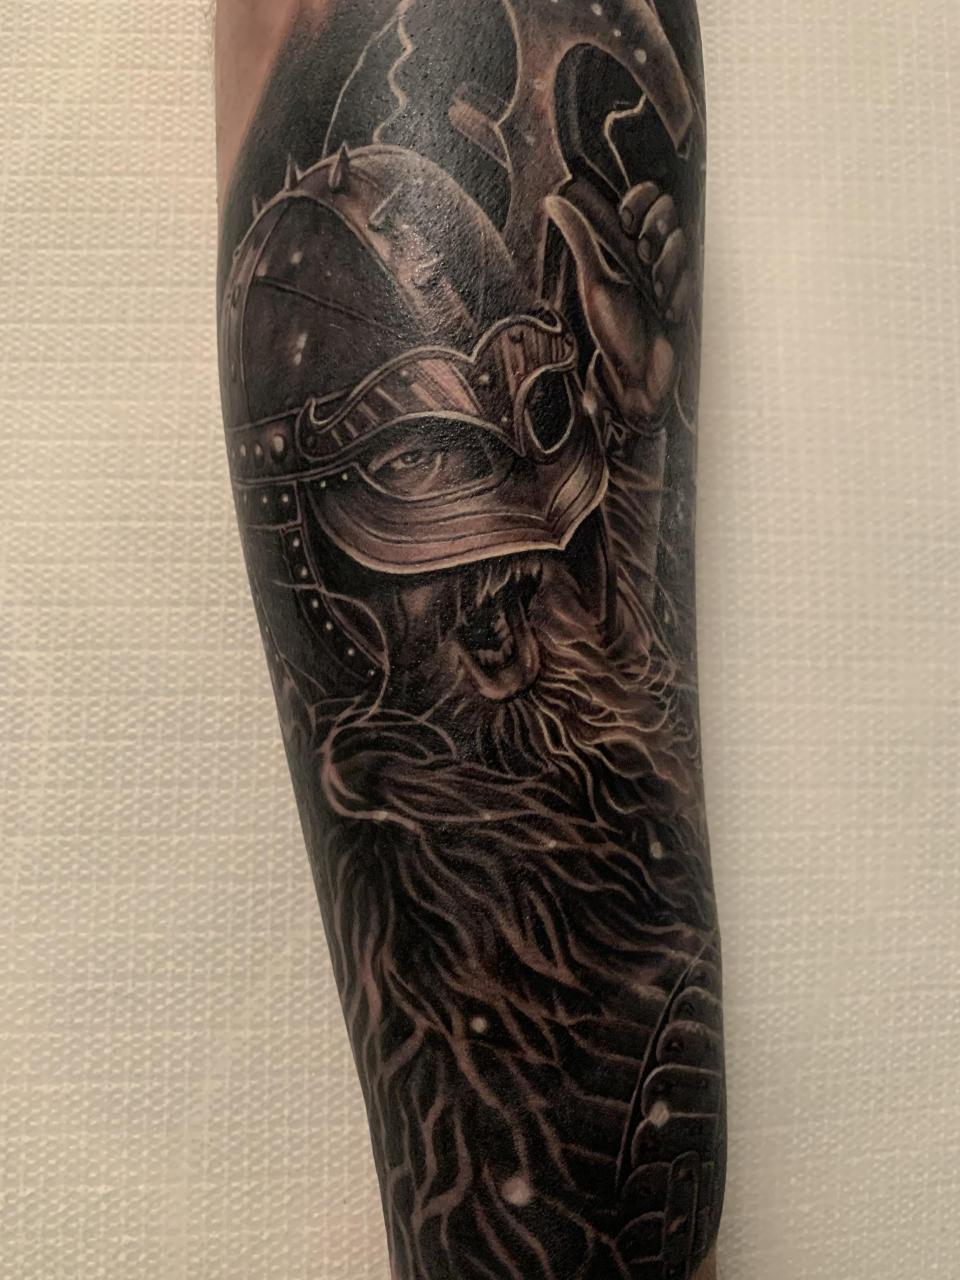 The start of my Norse Mythology sleeve. A Viking warrior by James Wilbraham at Black Haus in Leek UK 8.5 hour sitting. (Lower arm)